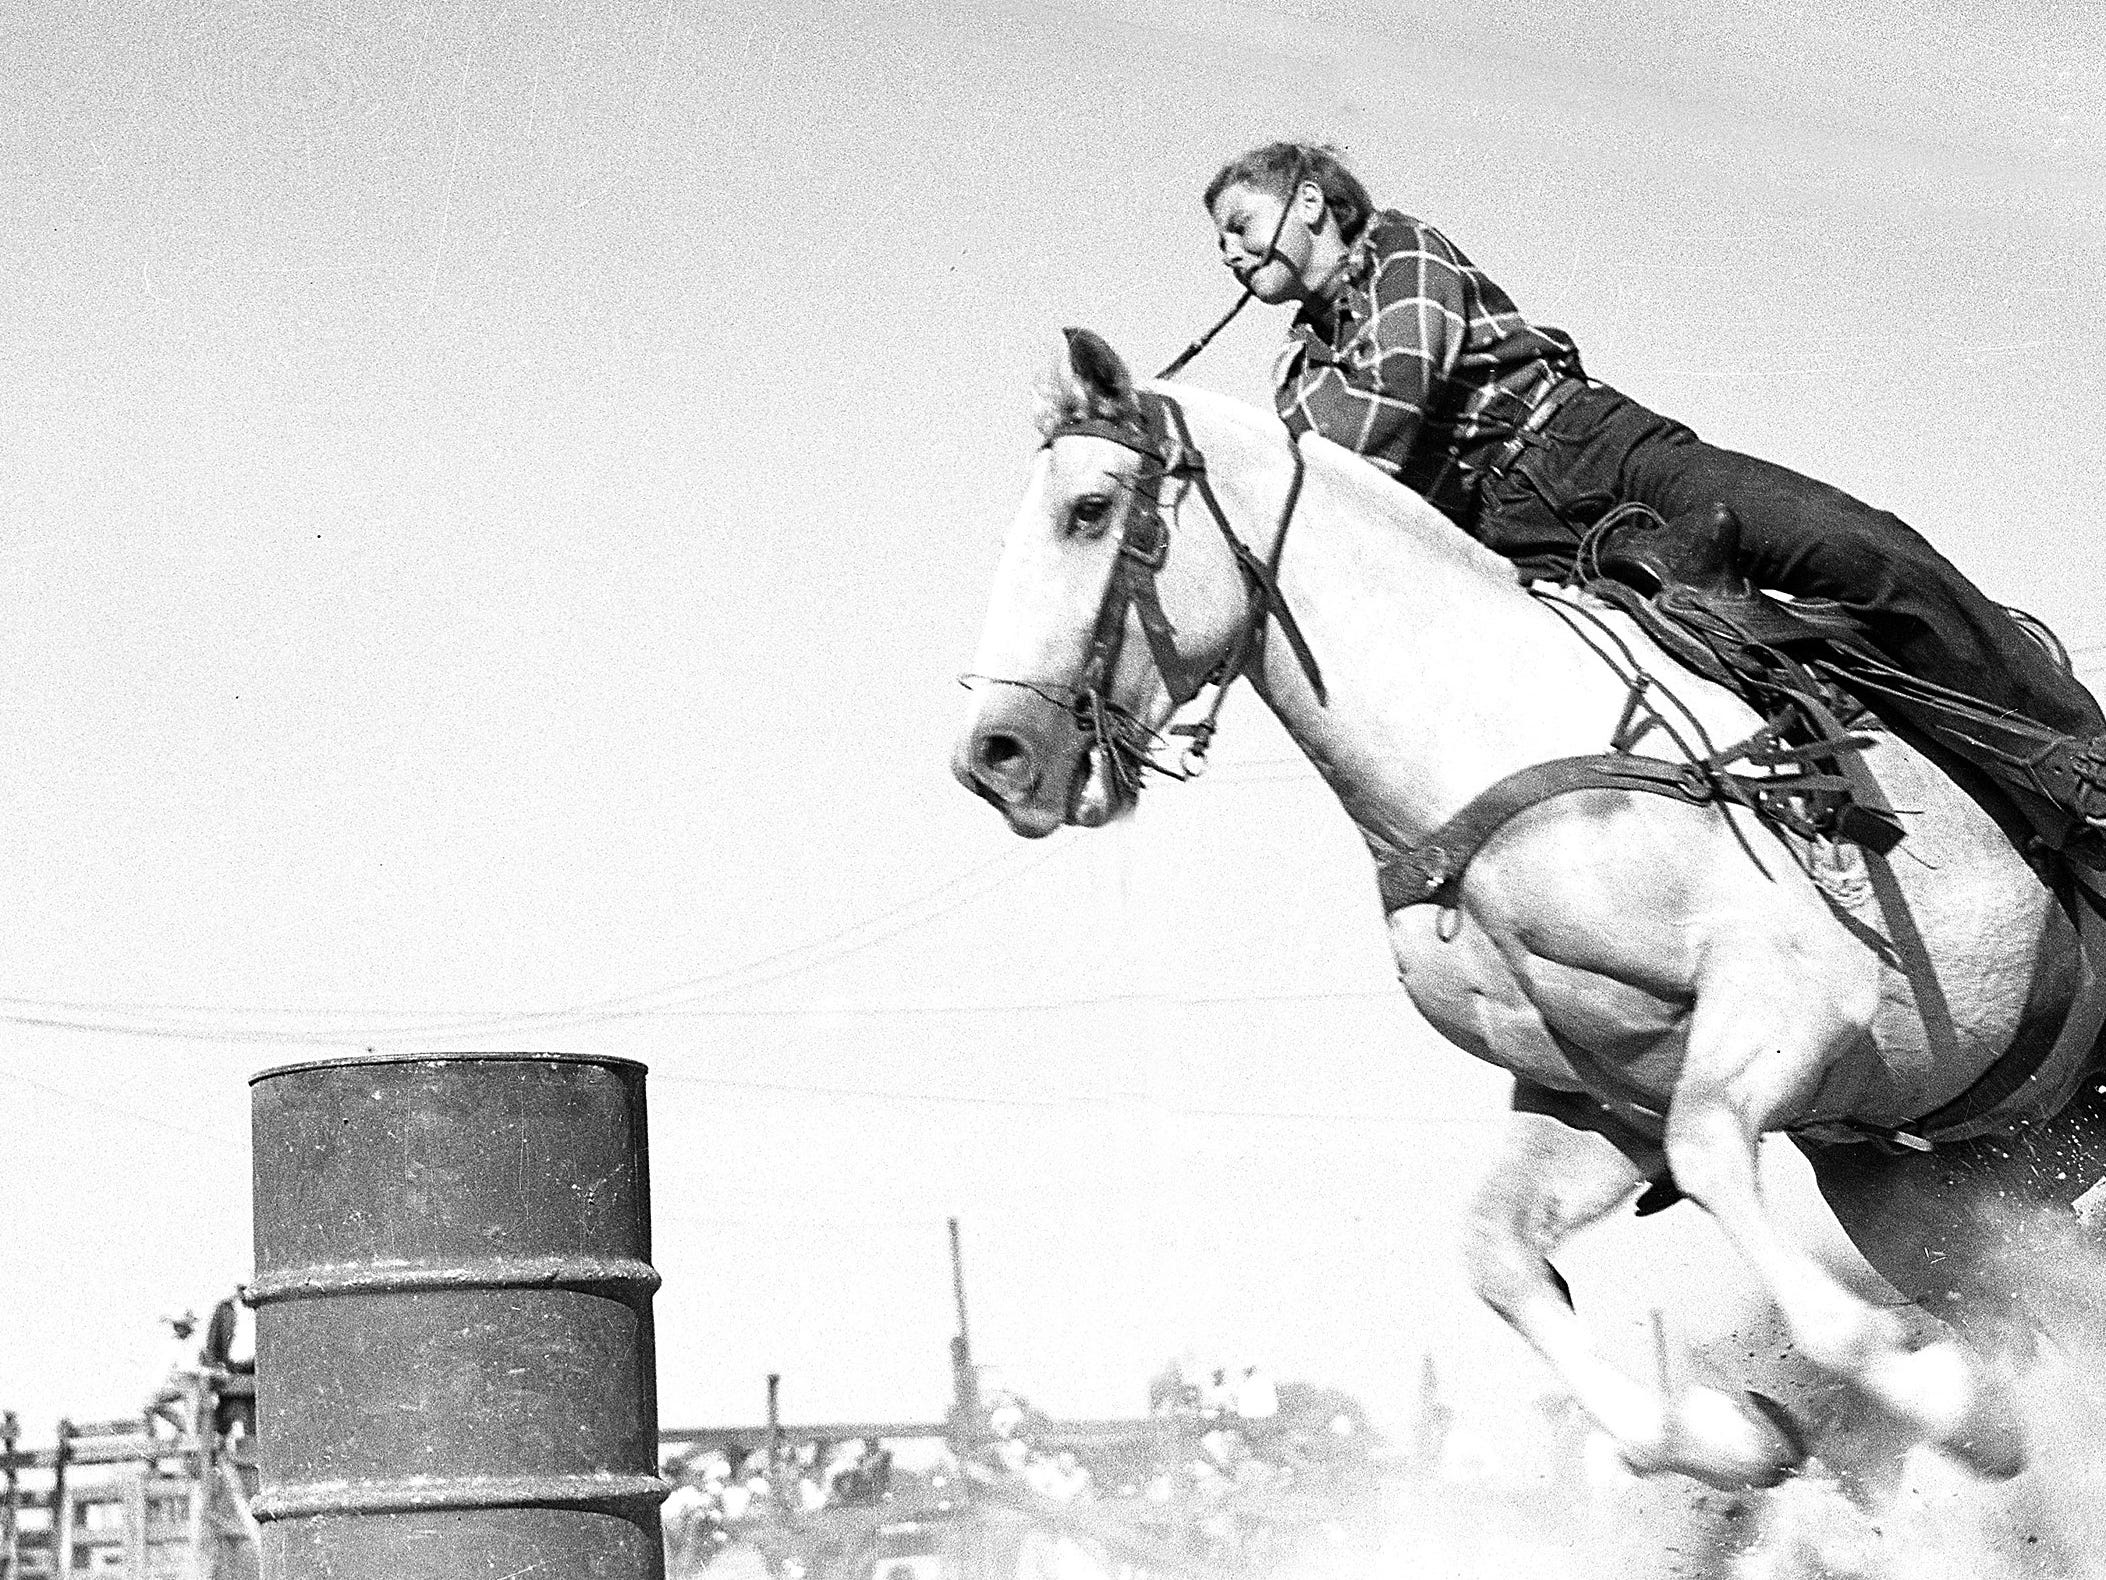 A cowgirl competes in a Girls Rodeo Association barrel racing competition in the 1940s.